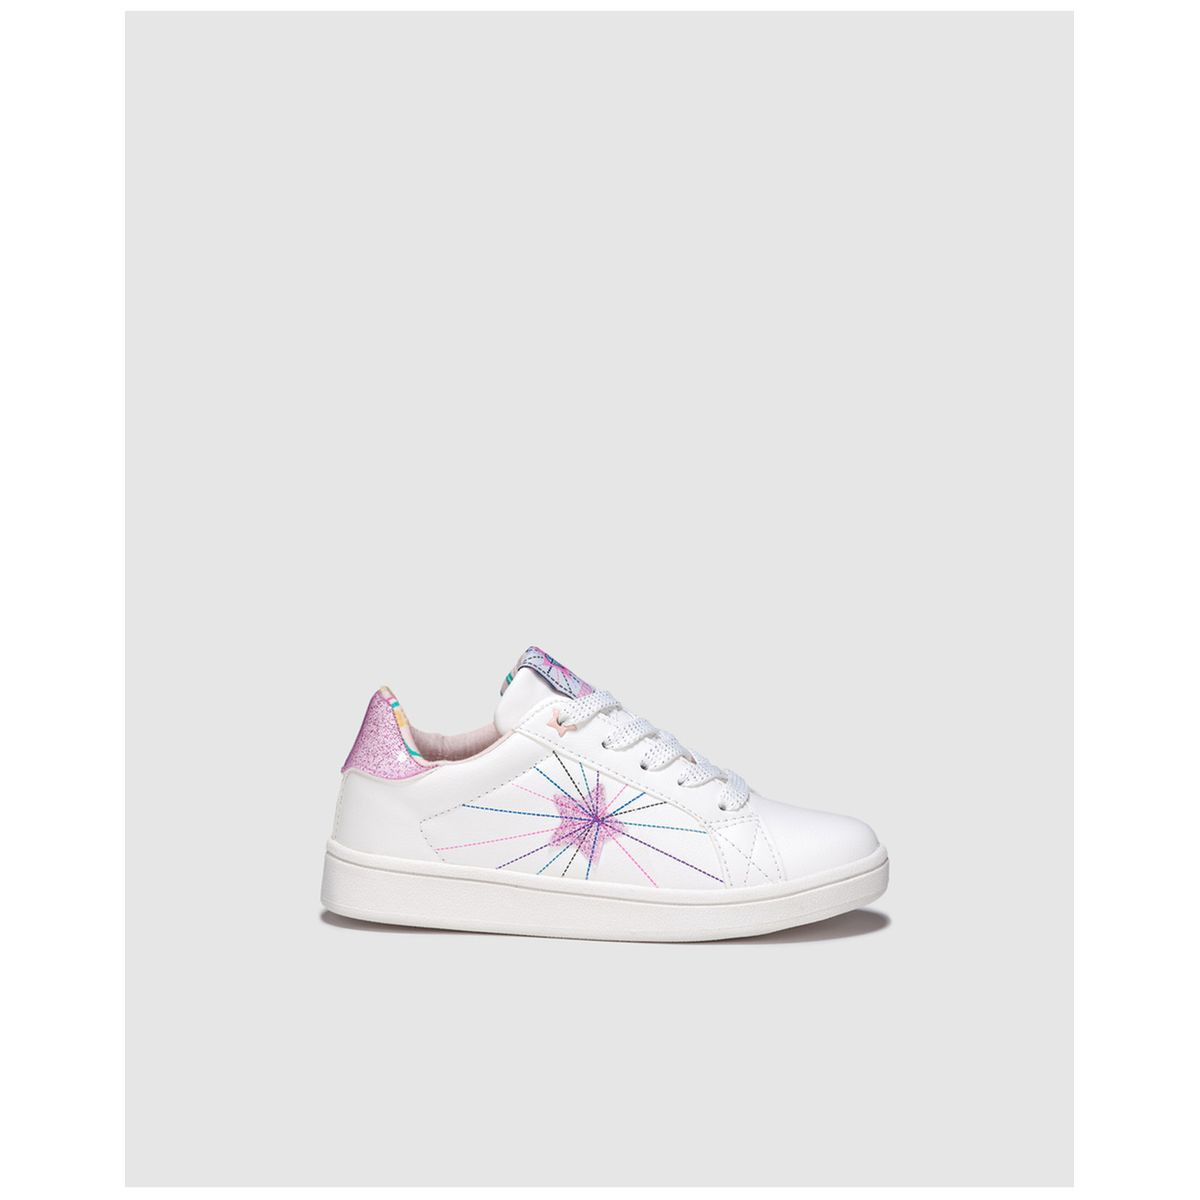 chaussure converse fille 25